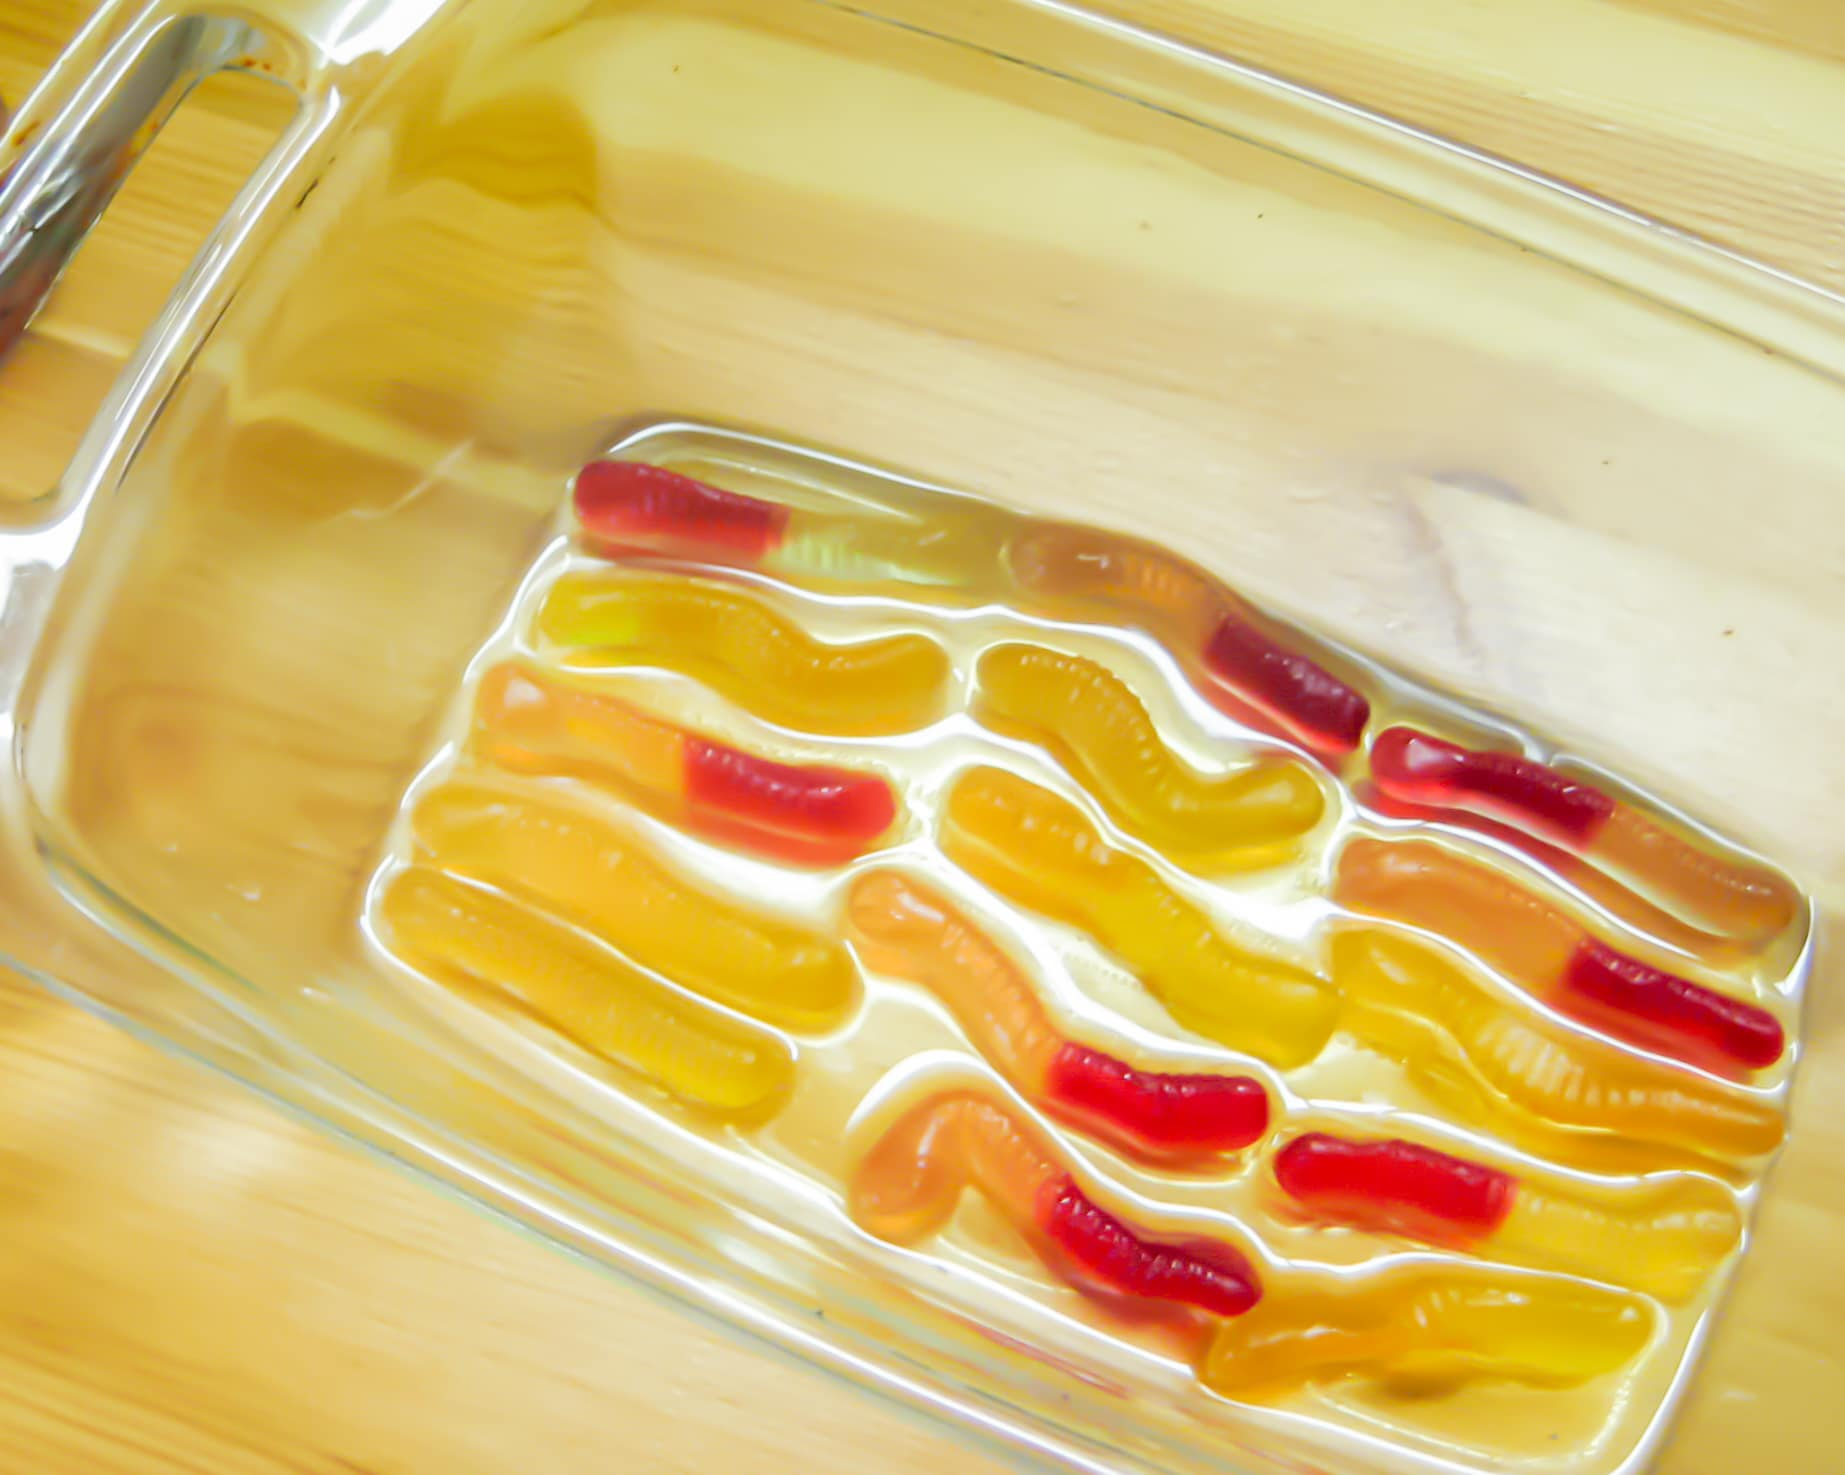 Gummy worms soaking in tequila